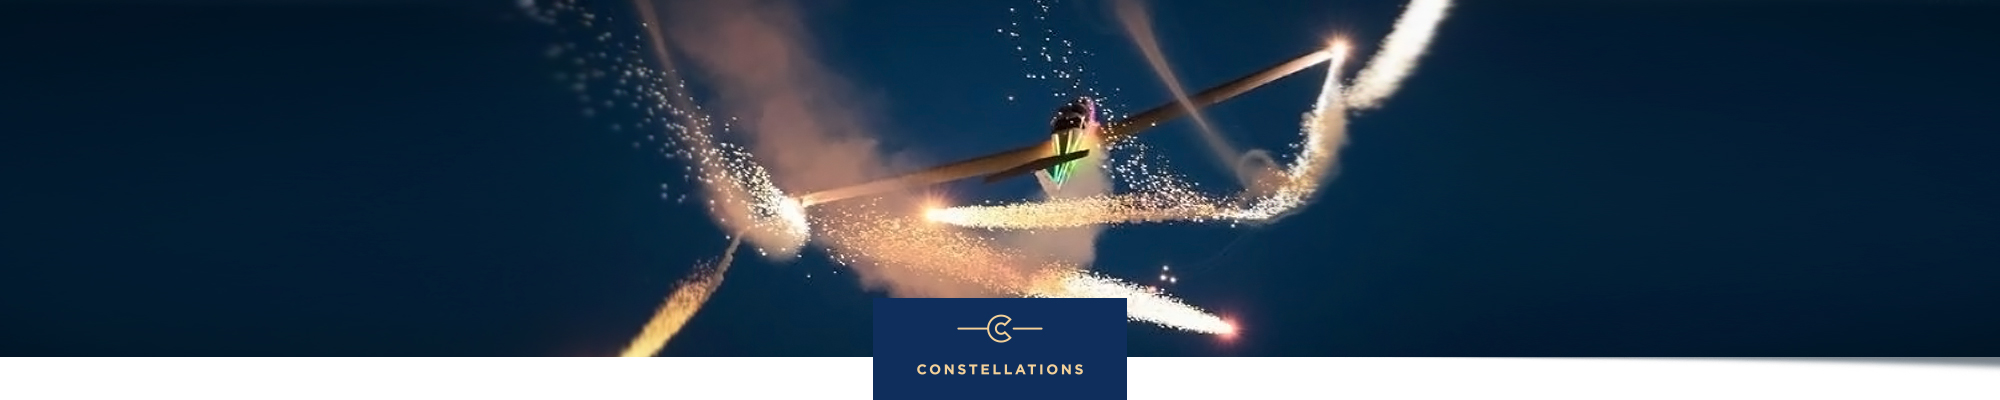 CONSTELLATION : evenement aerien